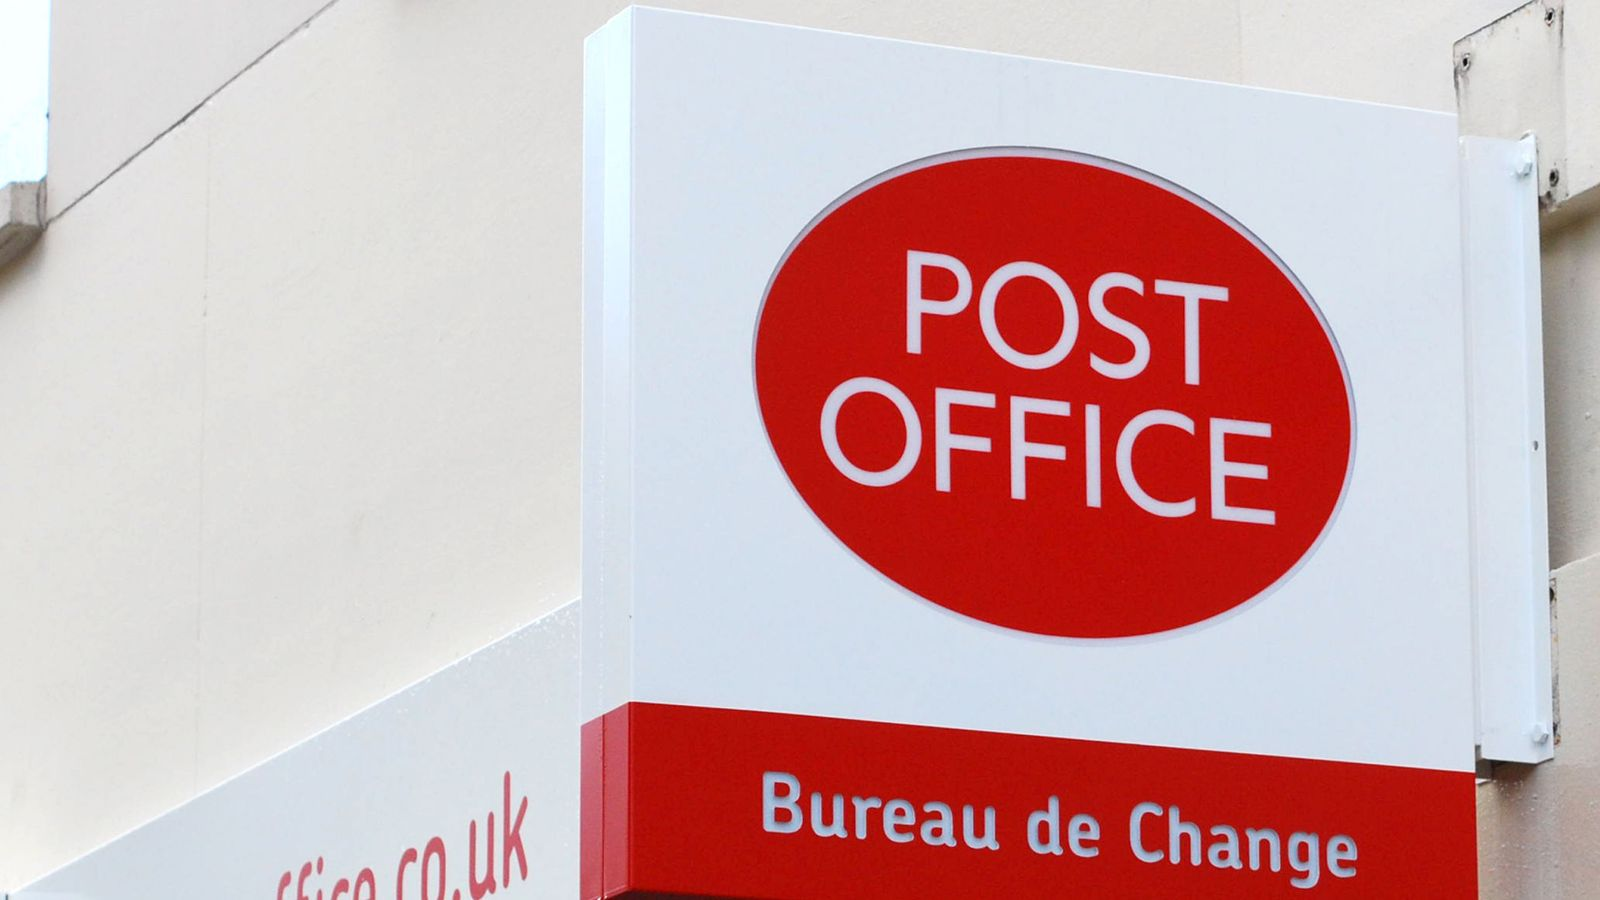 Post Office staff join wave of strikes with five-day walkout